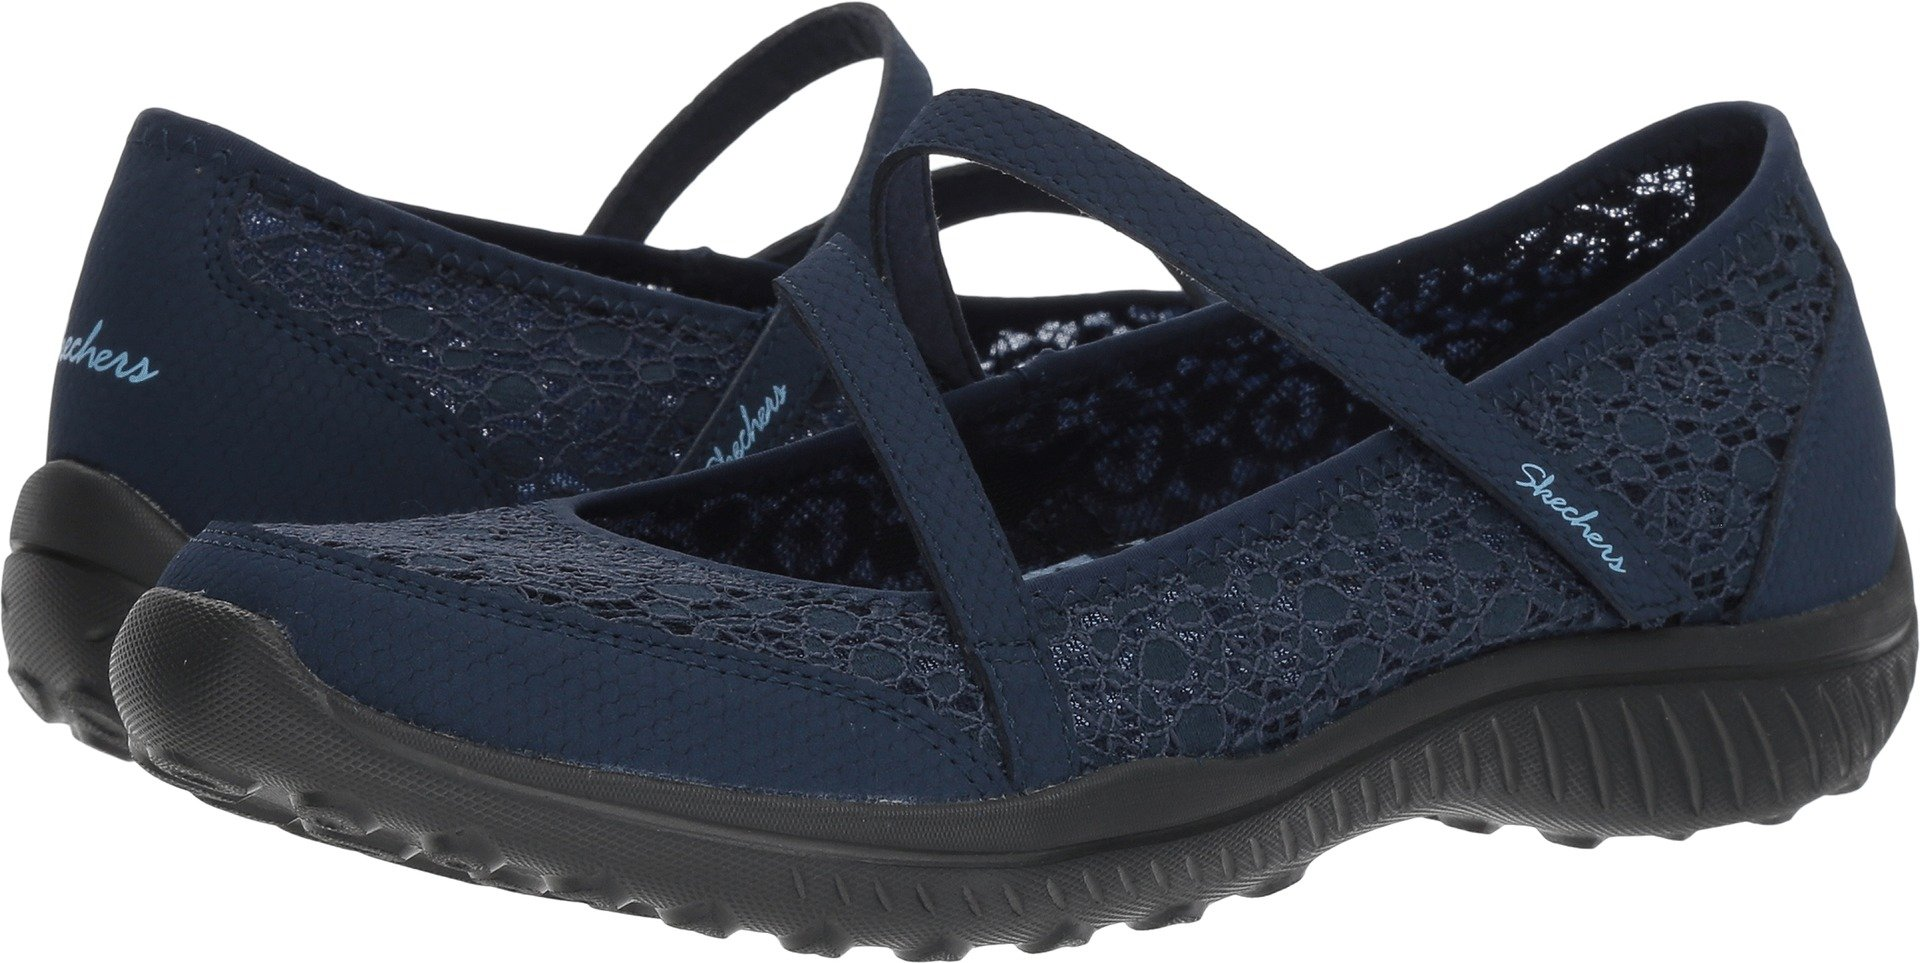 Skechers Be Light Florescent Womens Mary Jane Sneakers Navy 8.5 by Skechers